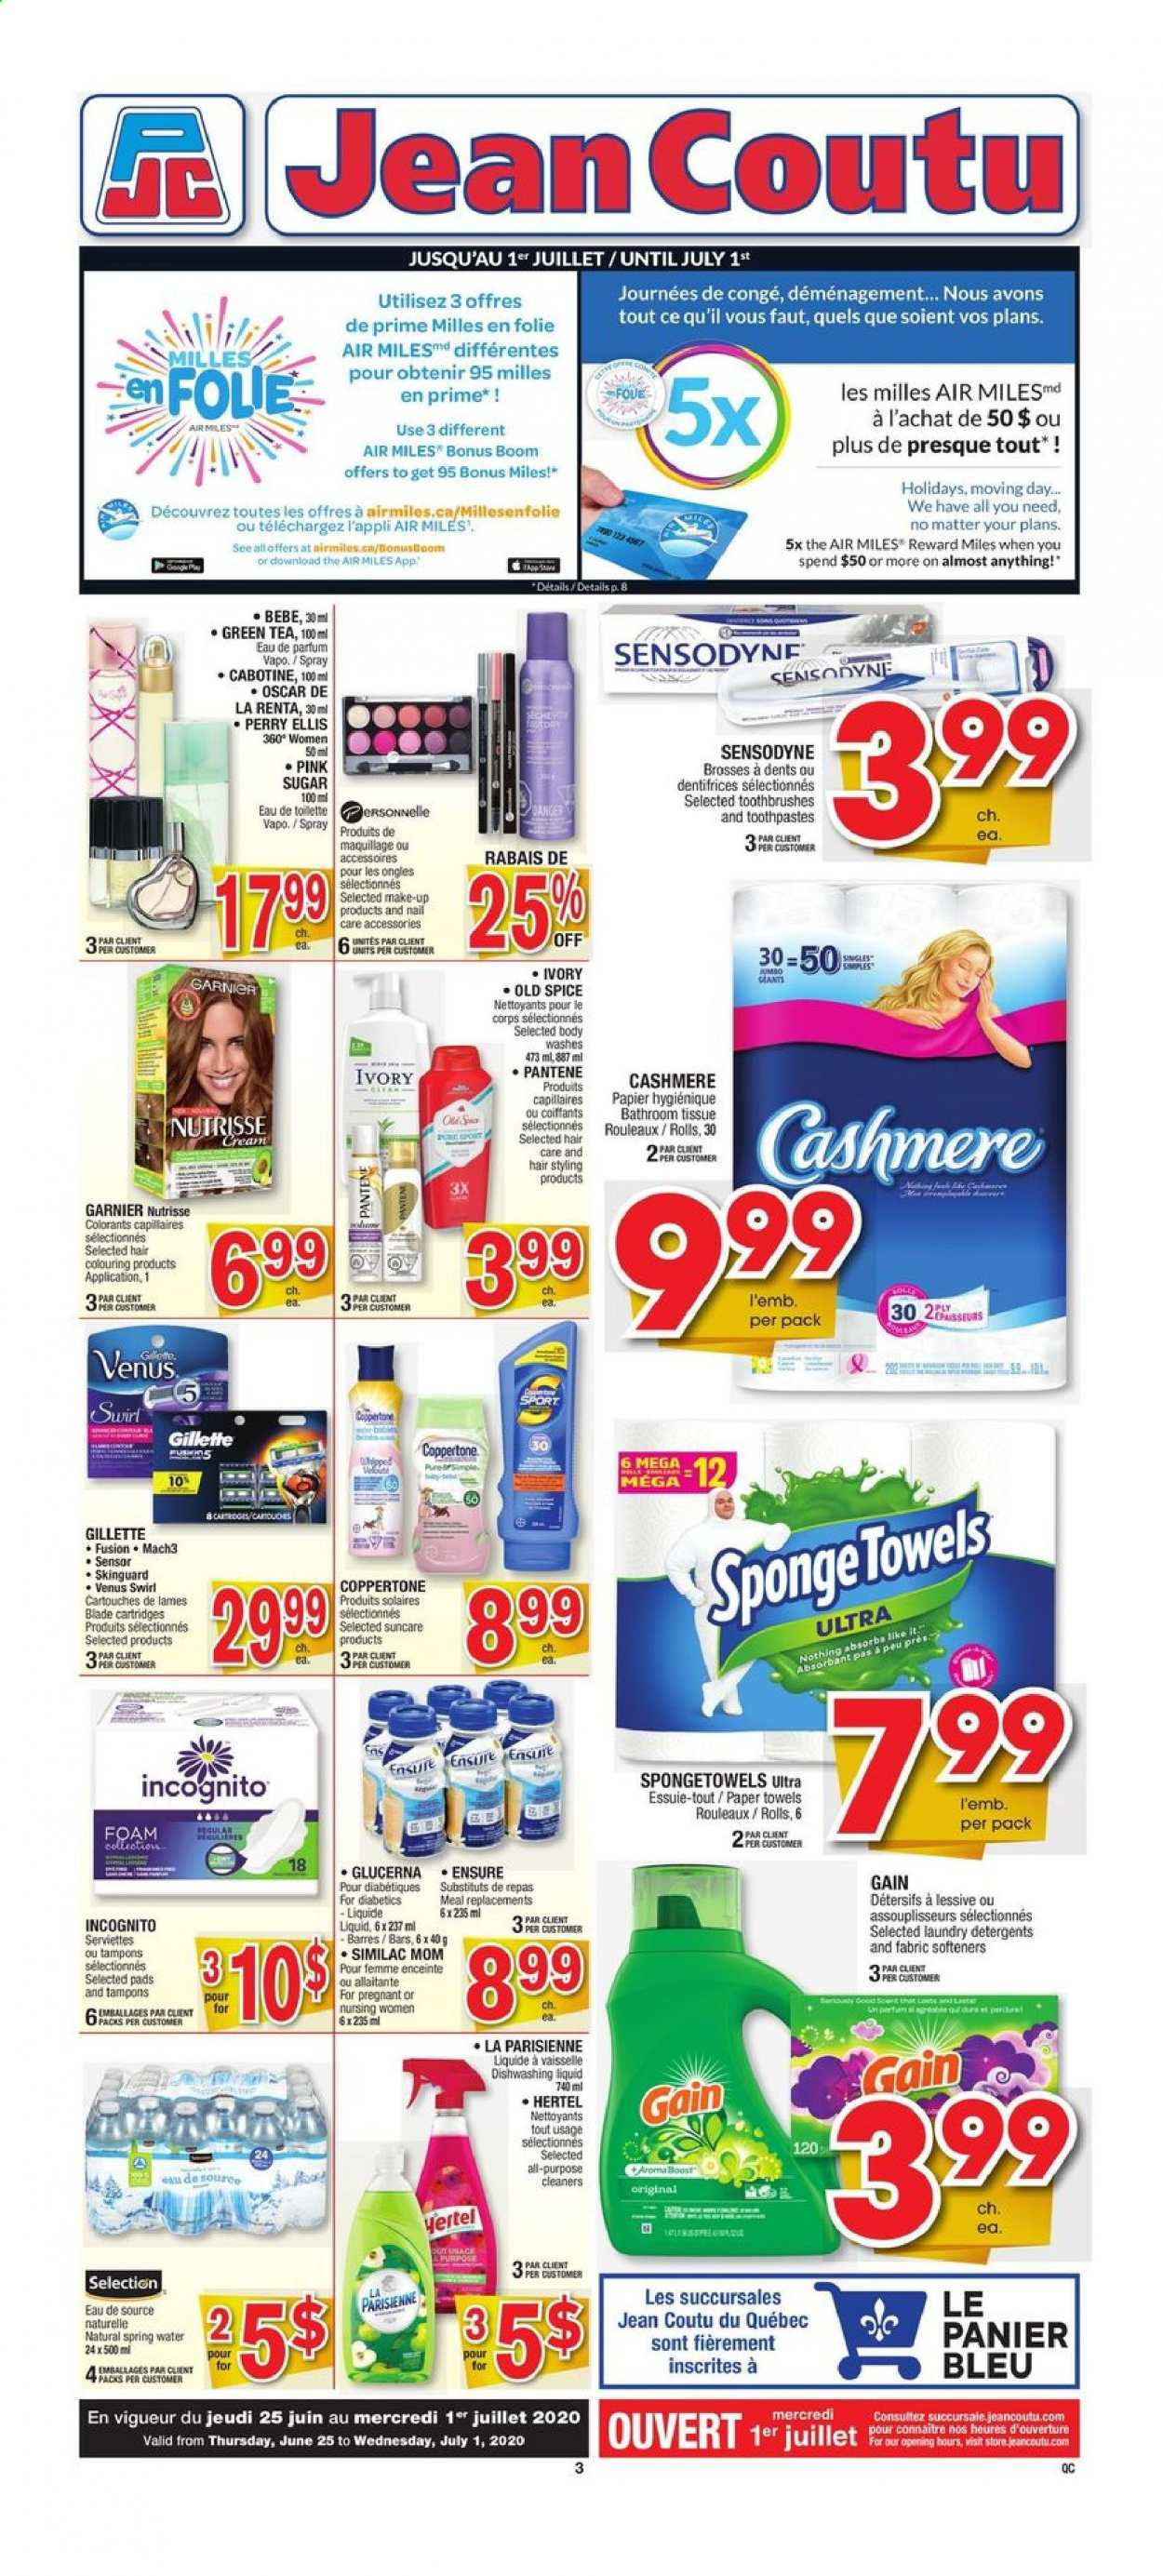 Jean Coutu Flyer  - June 25, 2020 - July 01, 2020. Page 1.